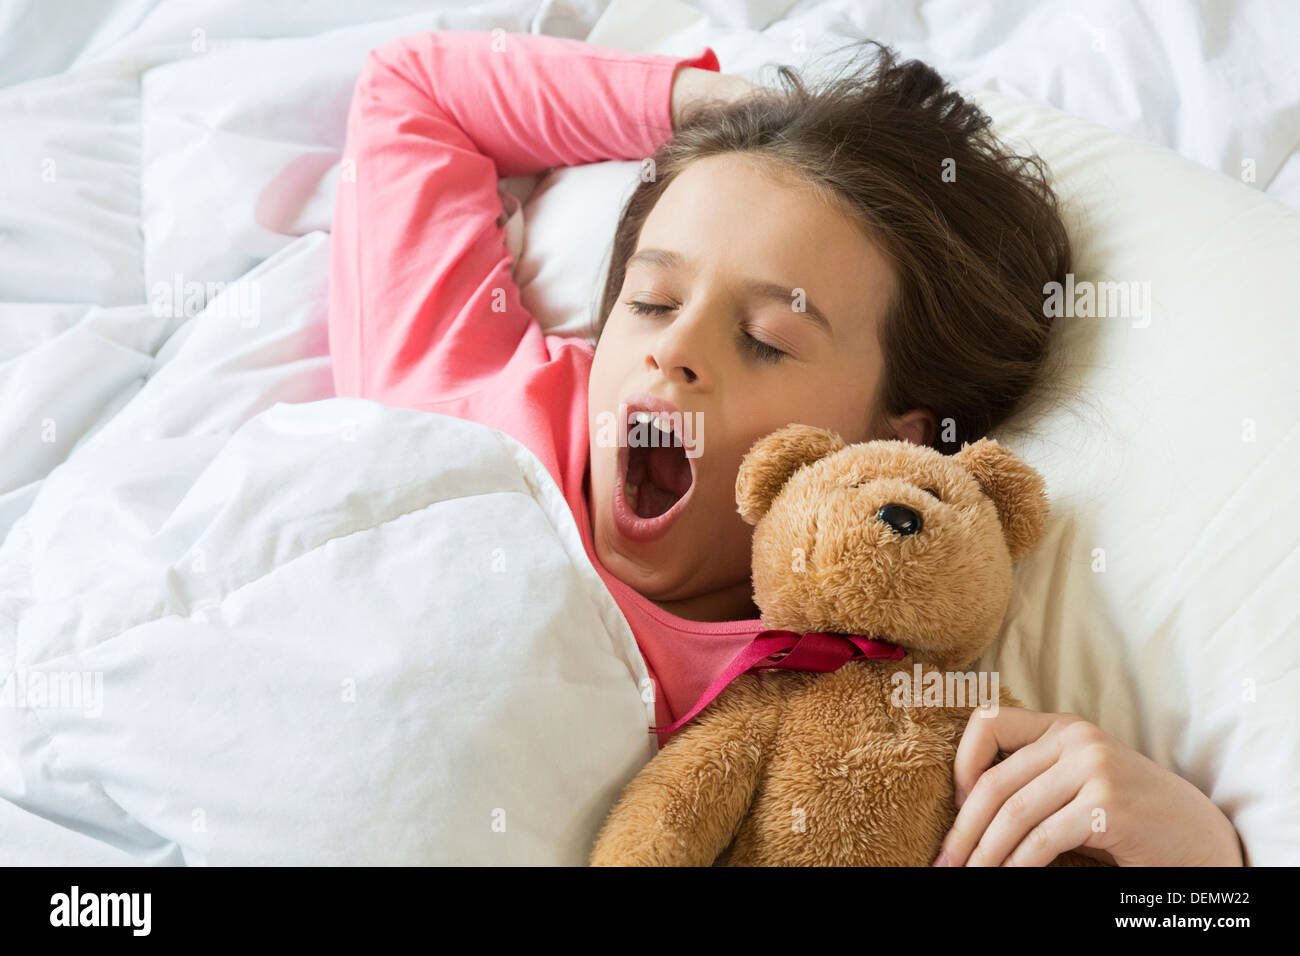 young girl waking up yawning in bed - Stock Image